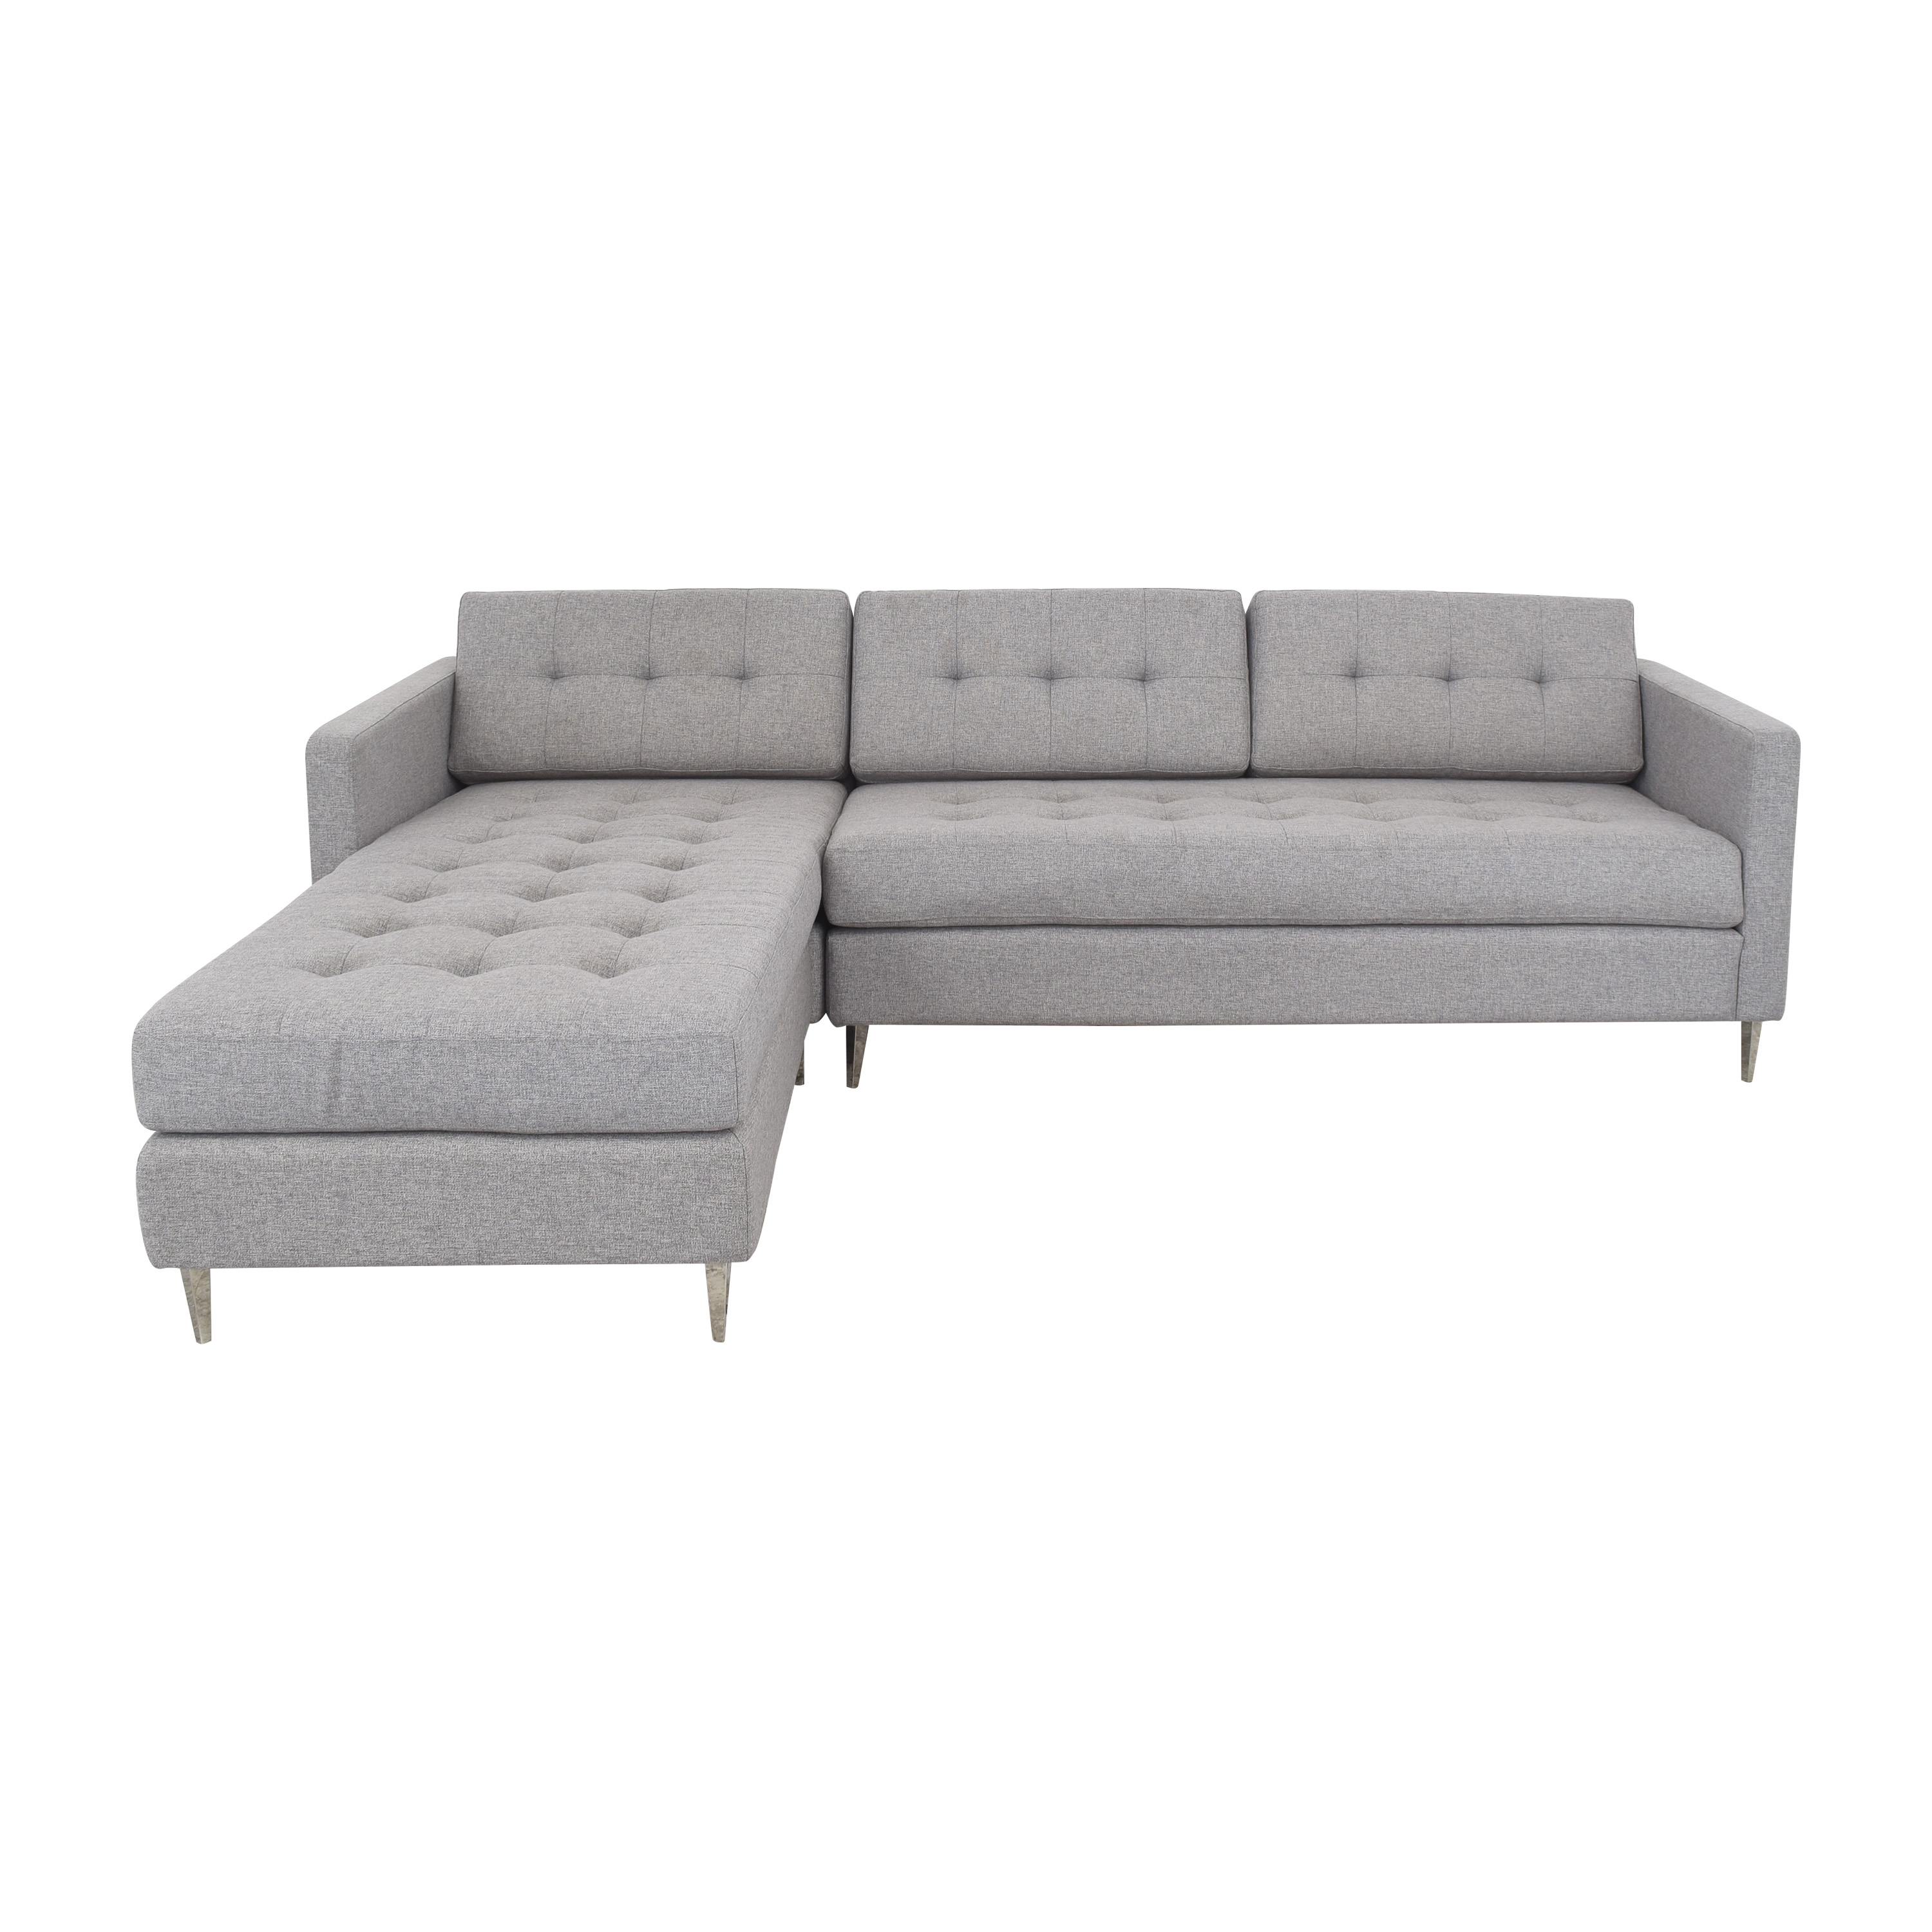 CB2 CB2 Ditto II Tufted Sectional Sofa Sofas